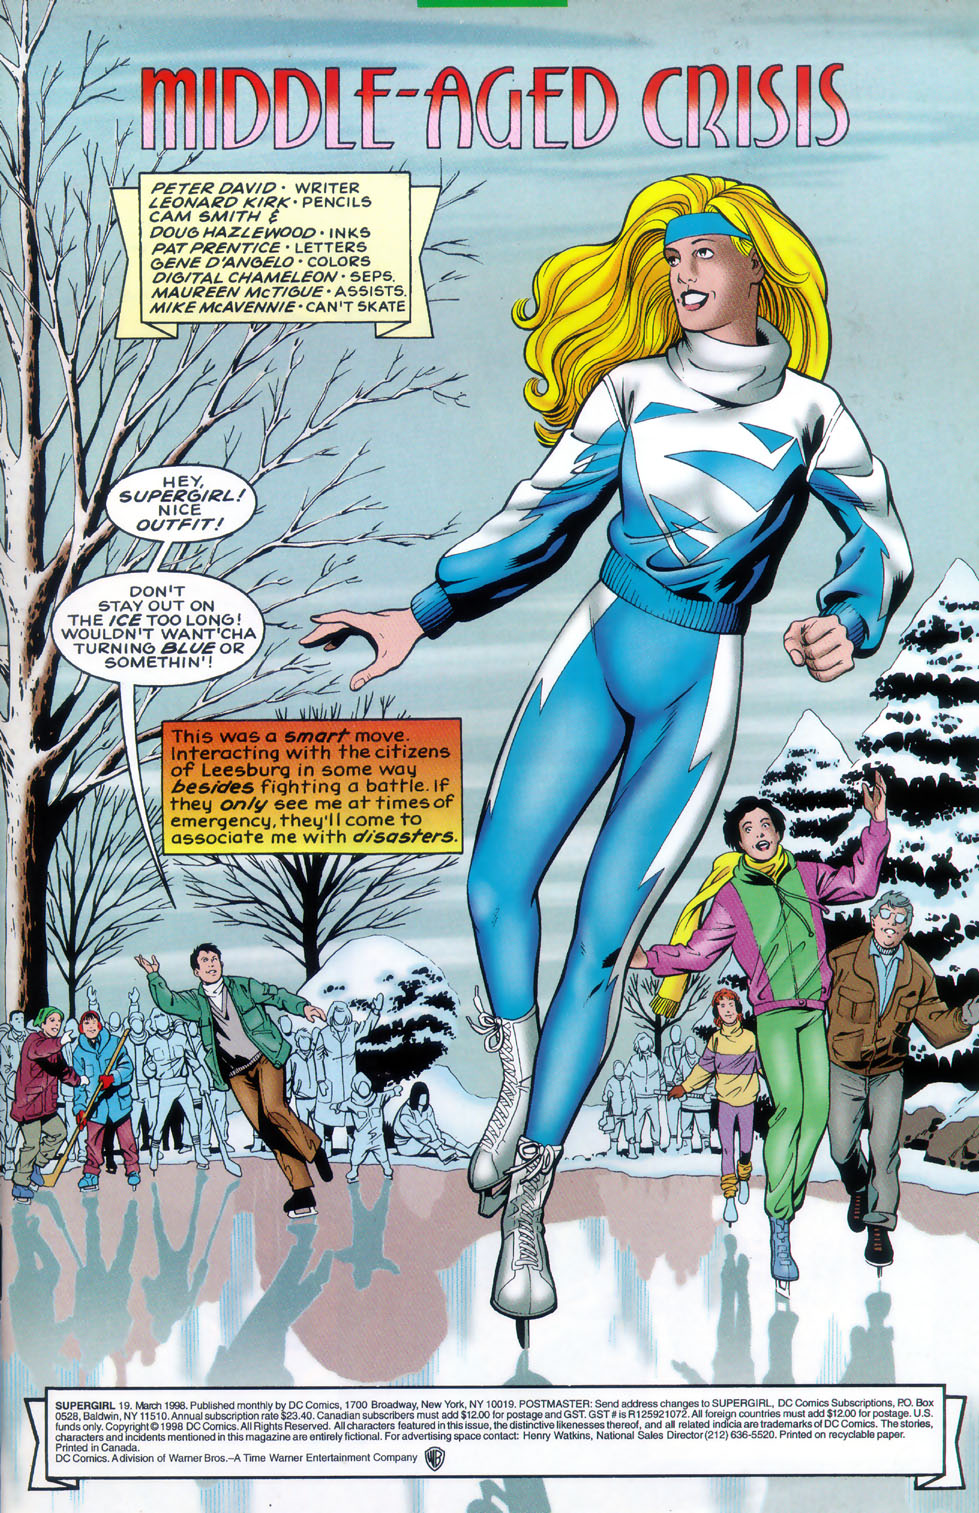 Supergirl skating in a white and blue outfit